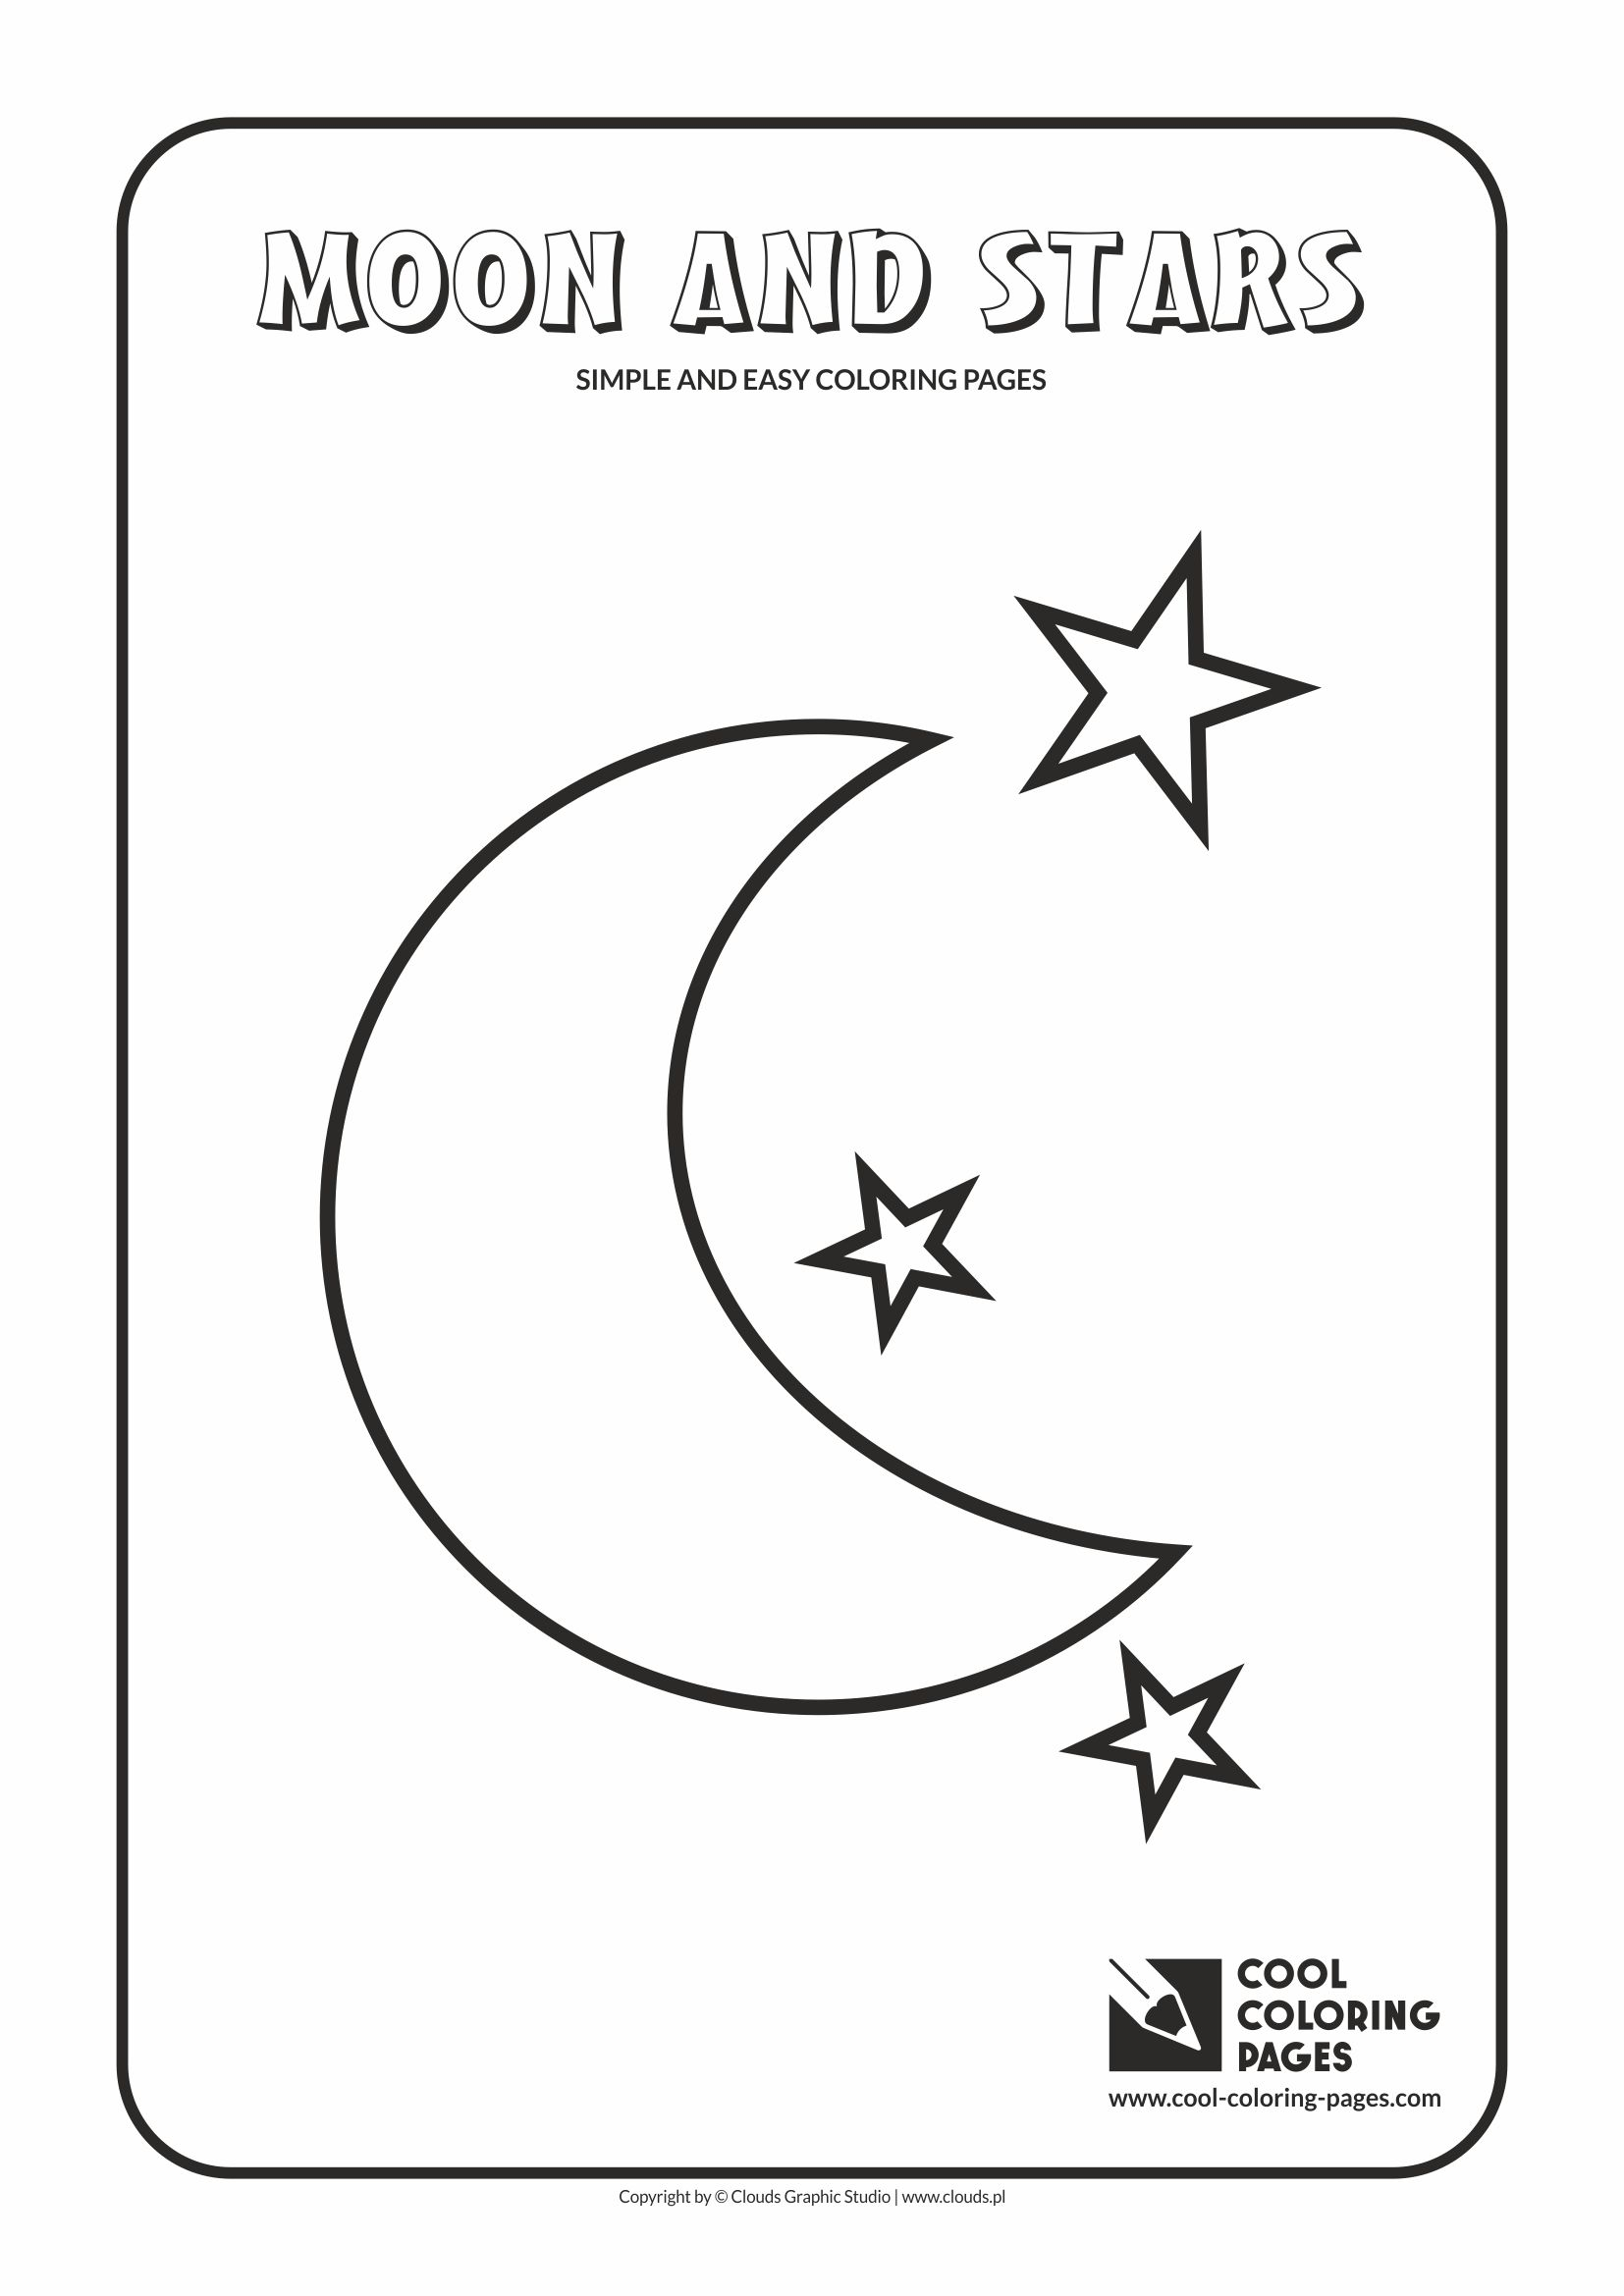 Simple and easy coloring pages for toddlers - Moon and stars